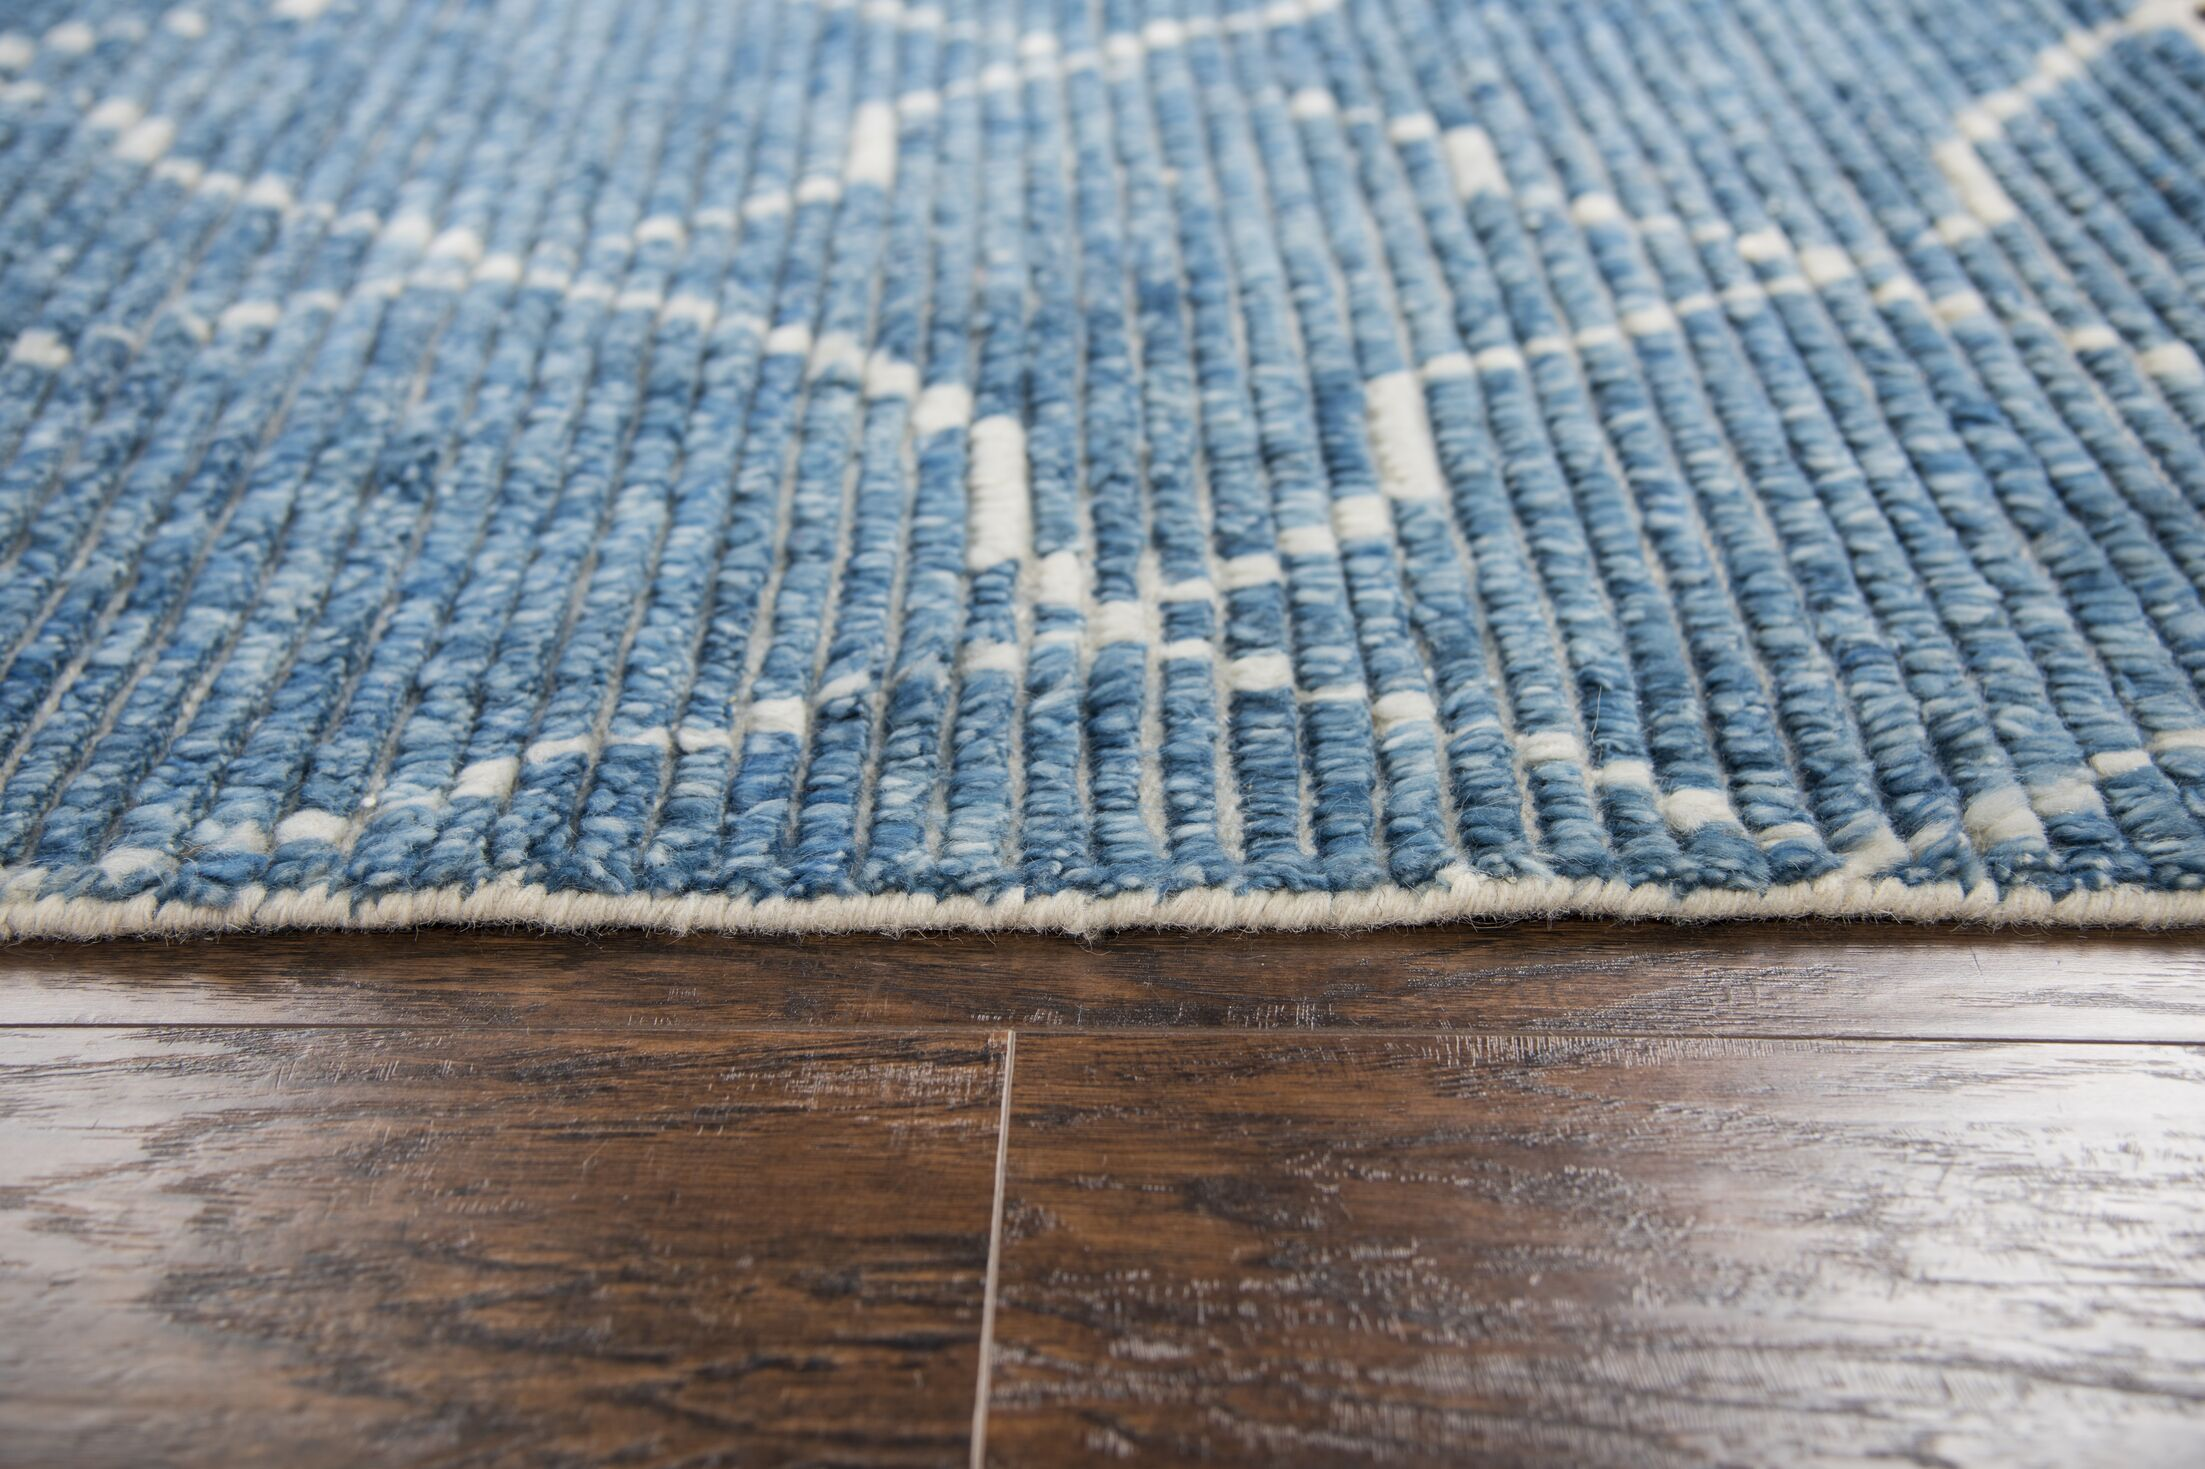 Doleman Hand-Knotted Wool Blue Area Rug Rug Size: Rectangle 7'9